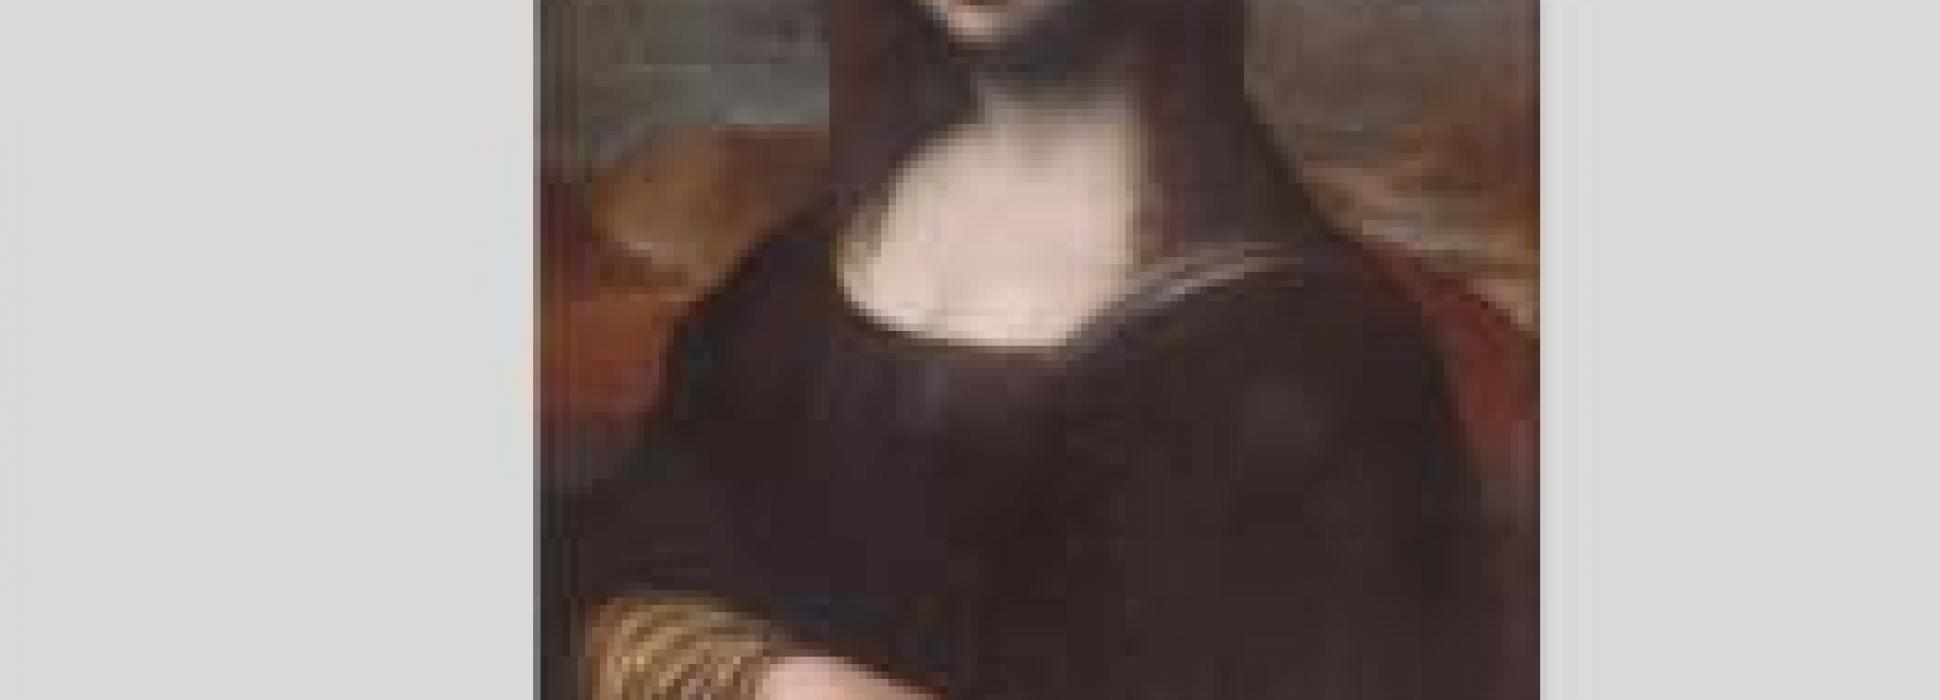 The Museum of Fine Arts of Troyes welcomes Mona Lisa